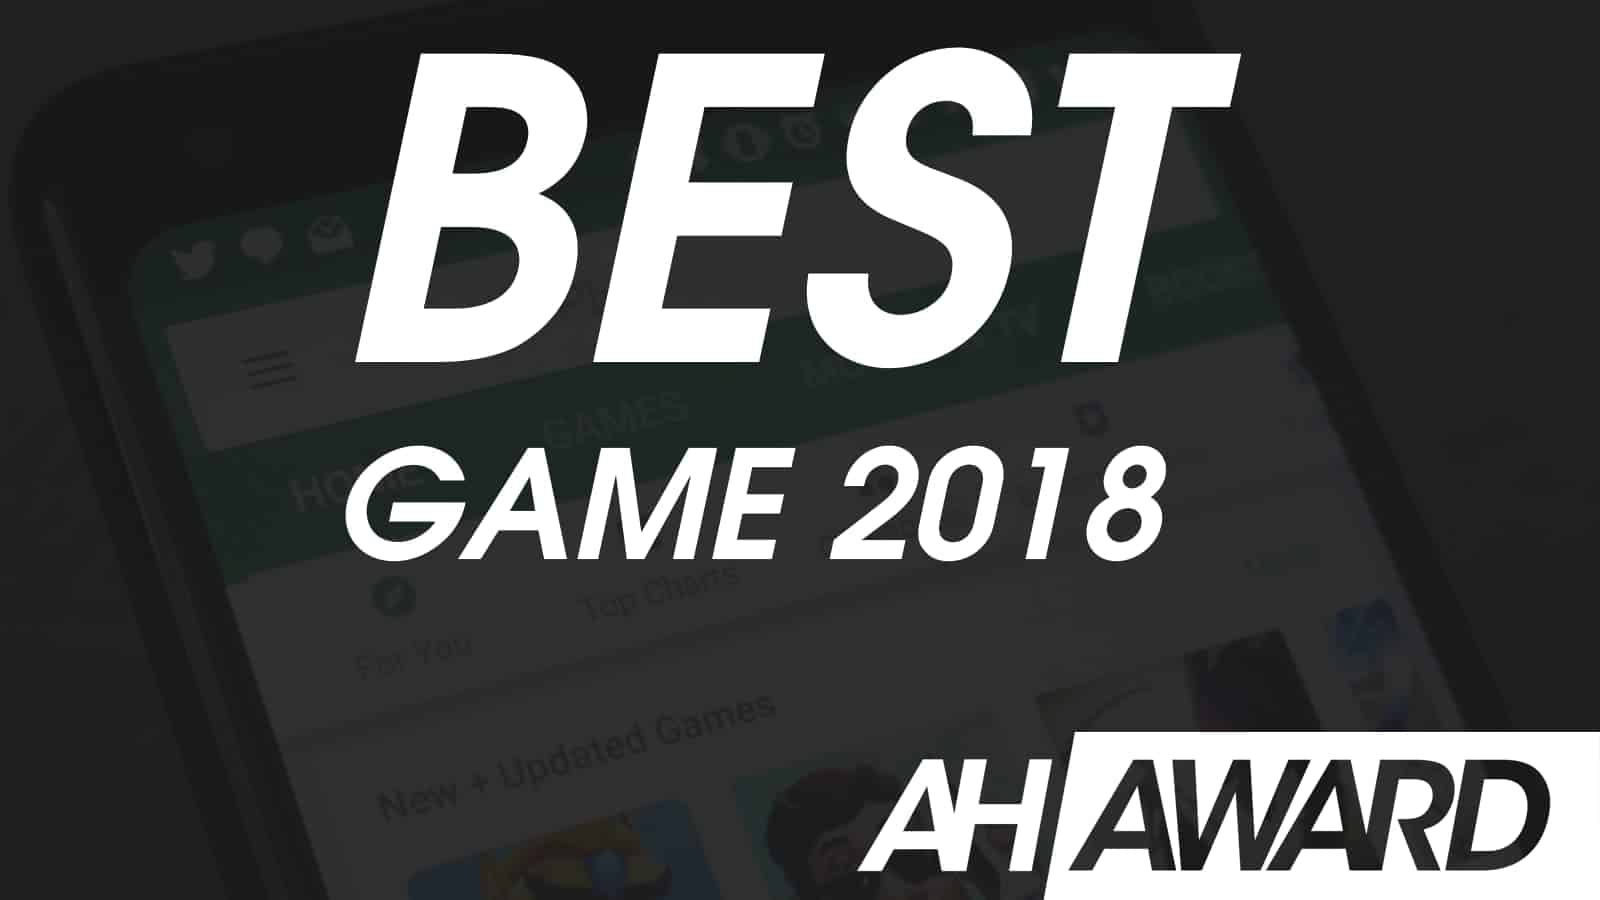 ANDROID HEADLINES AWARDS BEST GAME 2018